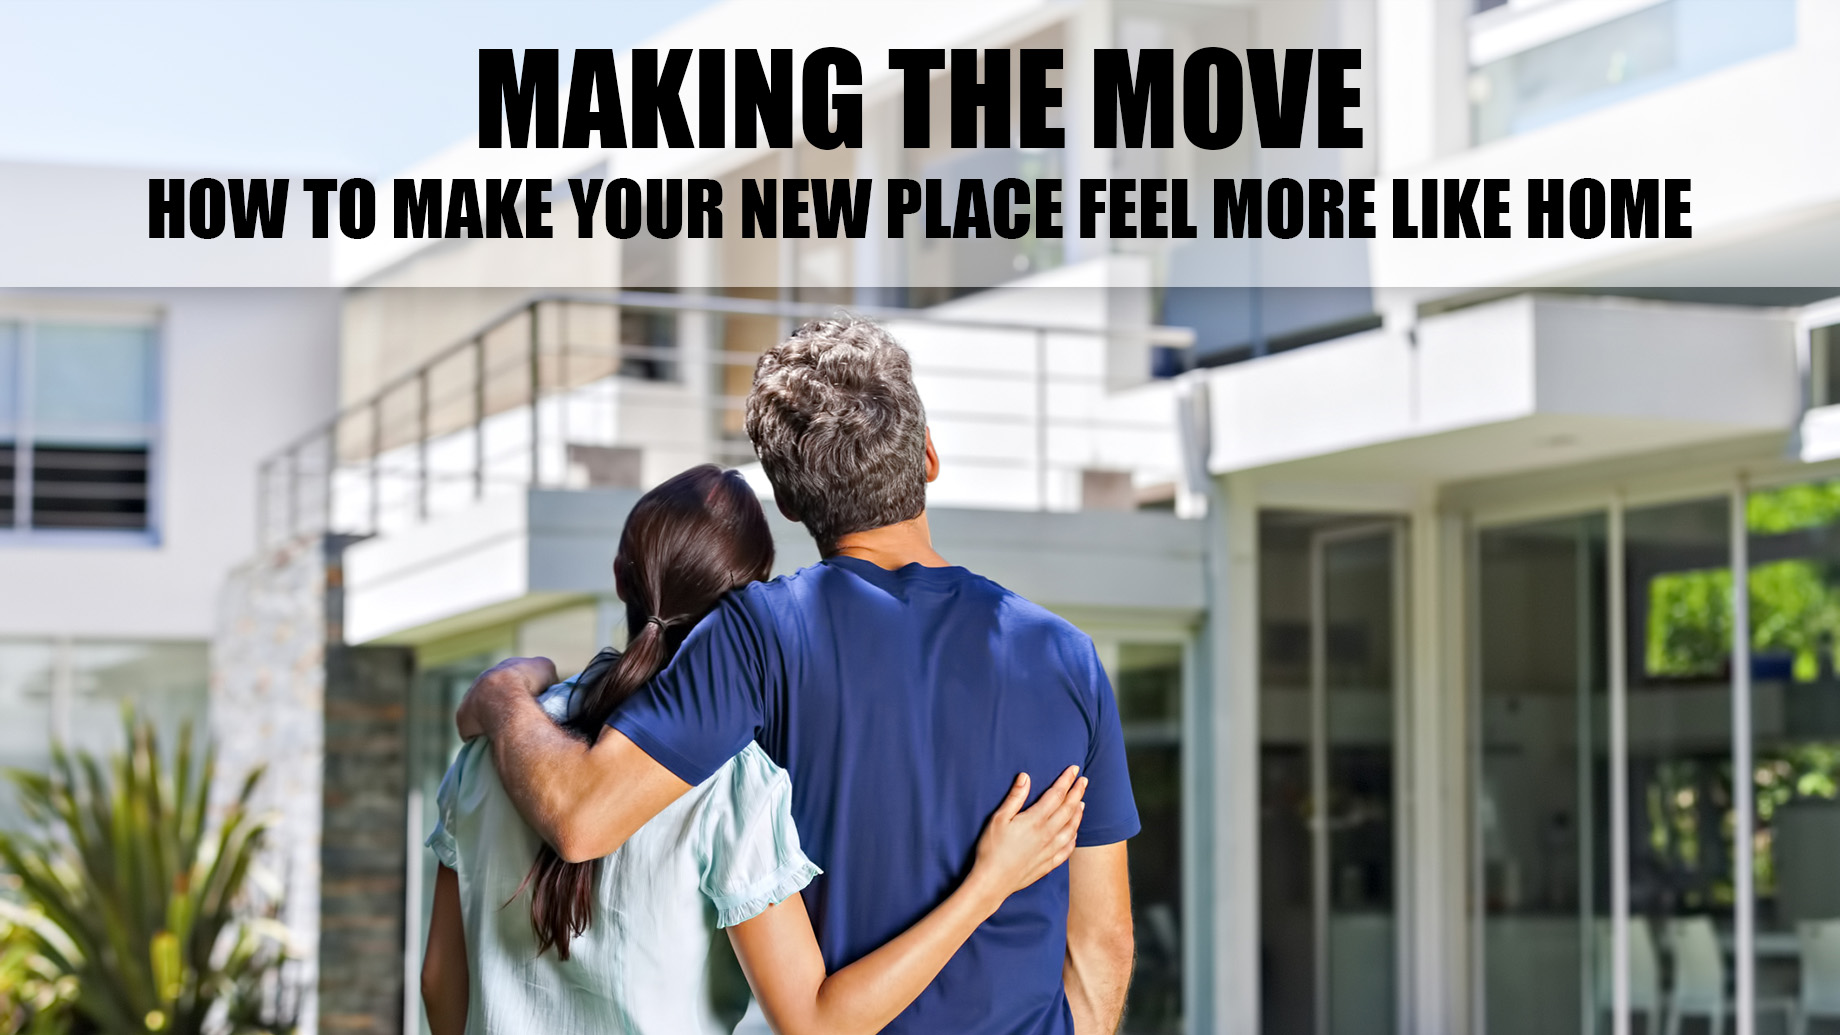 Making the Move - How to Make Your New Place Feel More Like Home